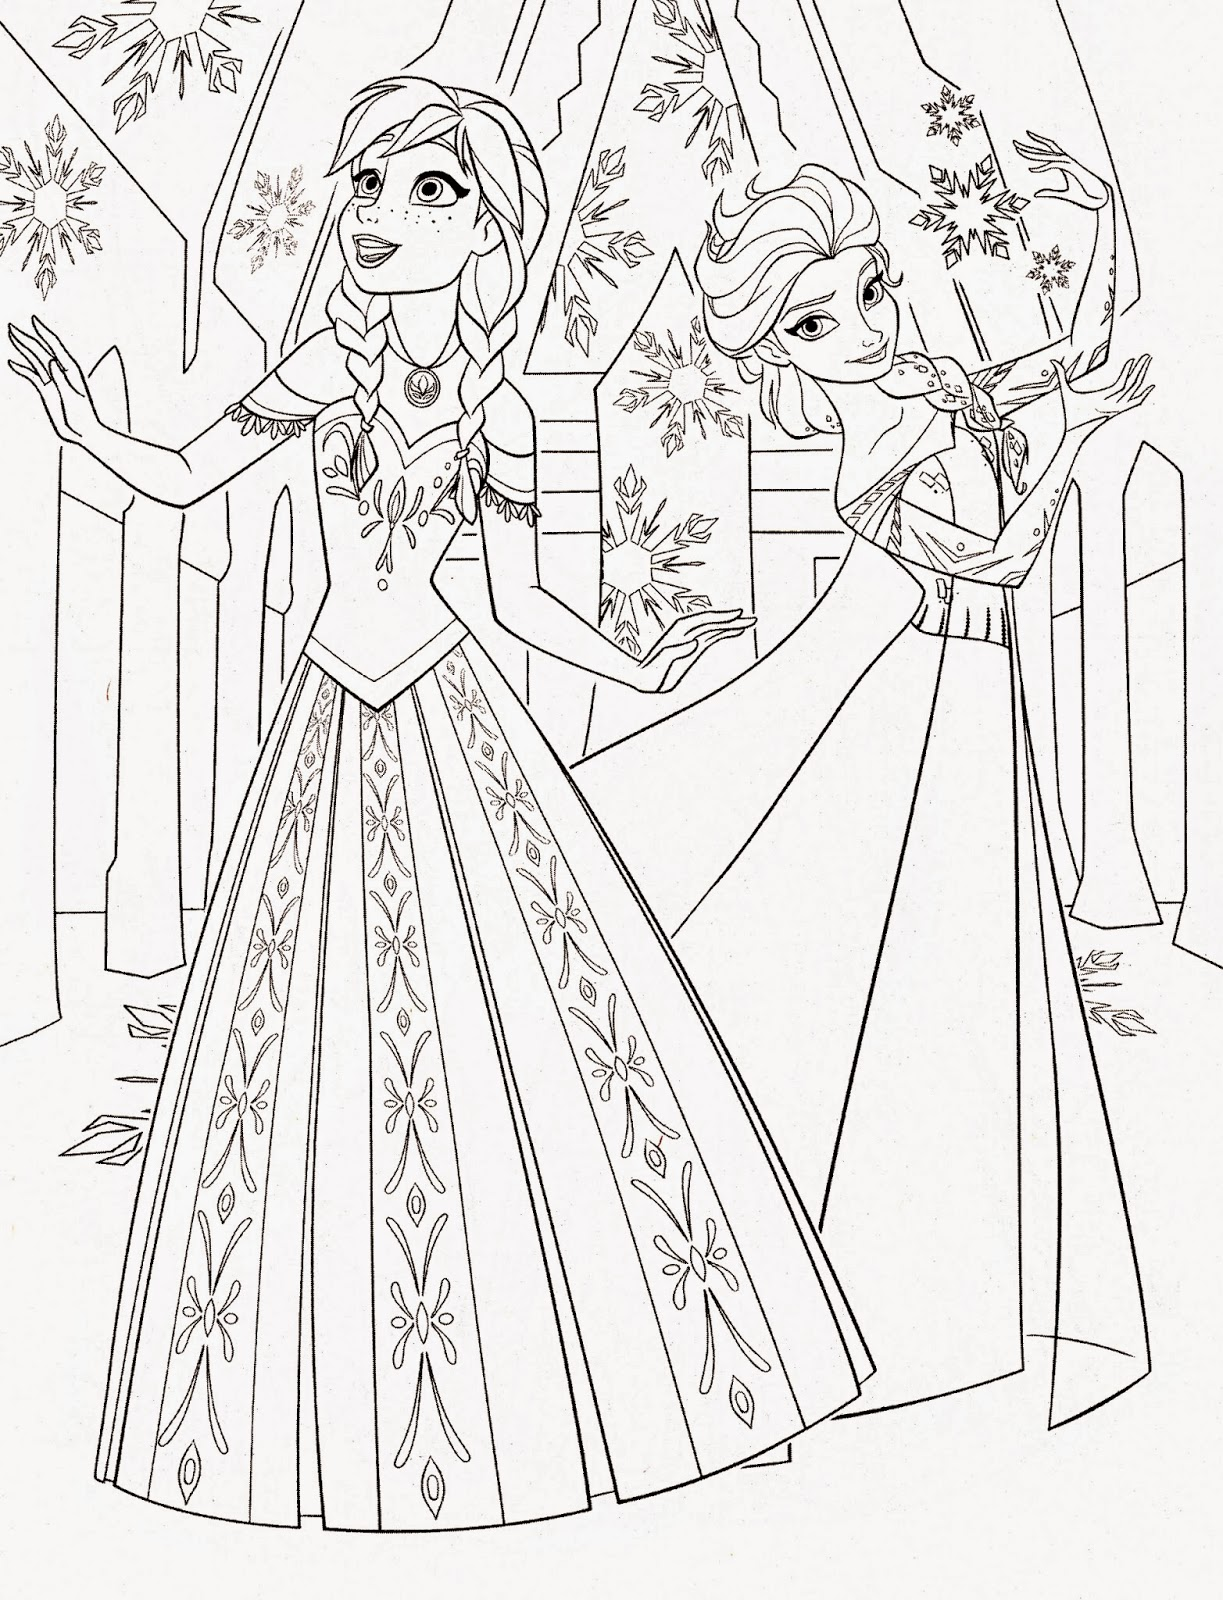 Disney Princess Frozen Elsa And Anna Coloring Pages Disney Princess Coloring Pages Frozen Free Coloring Sheets